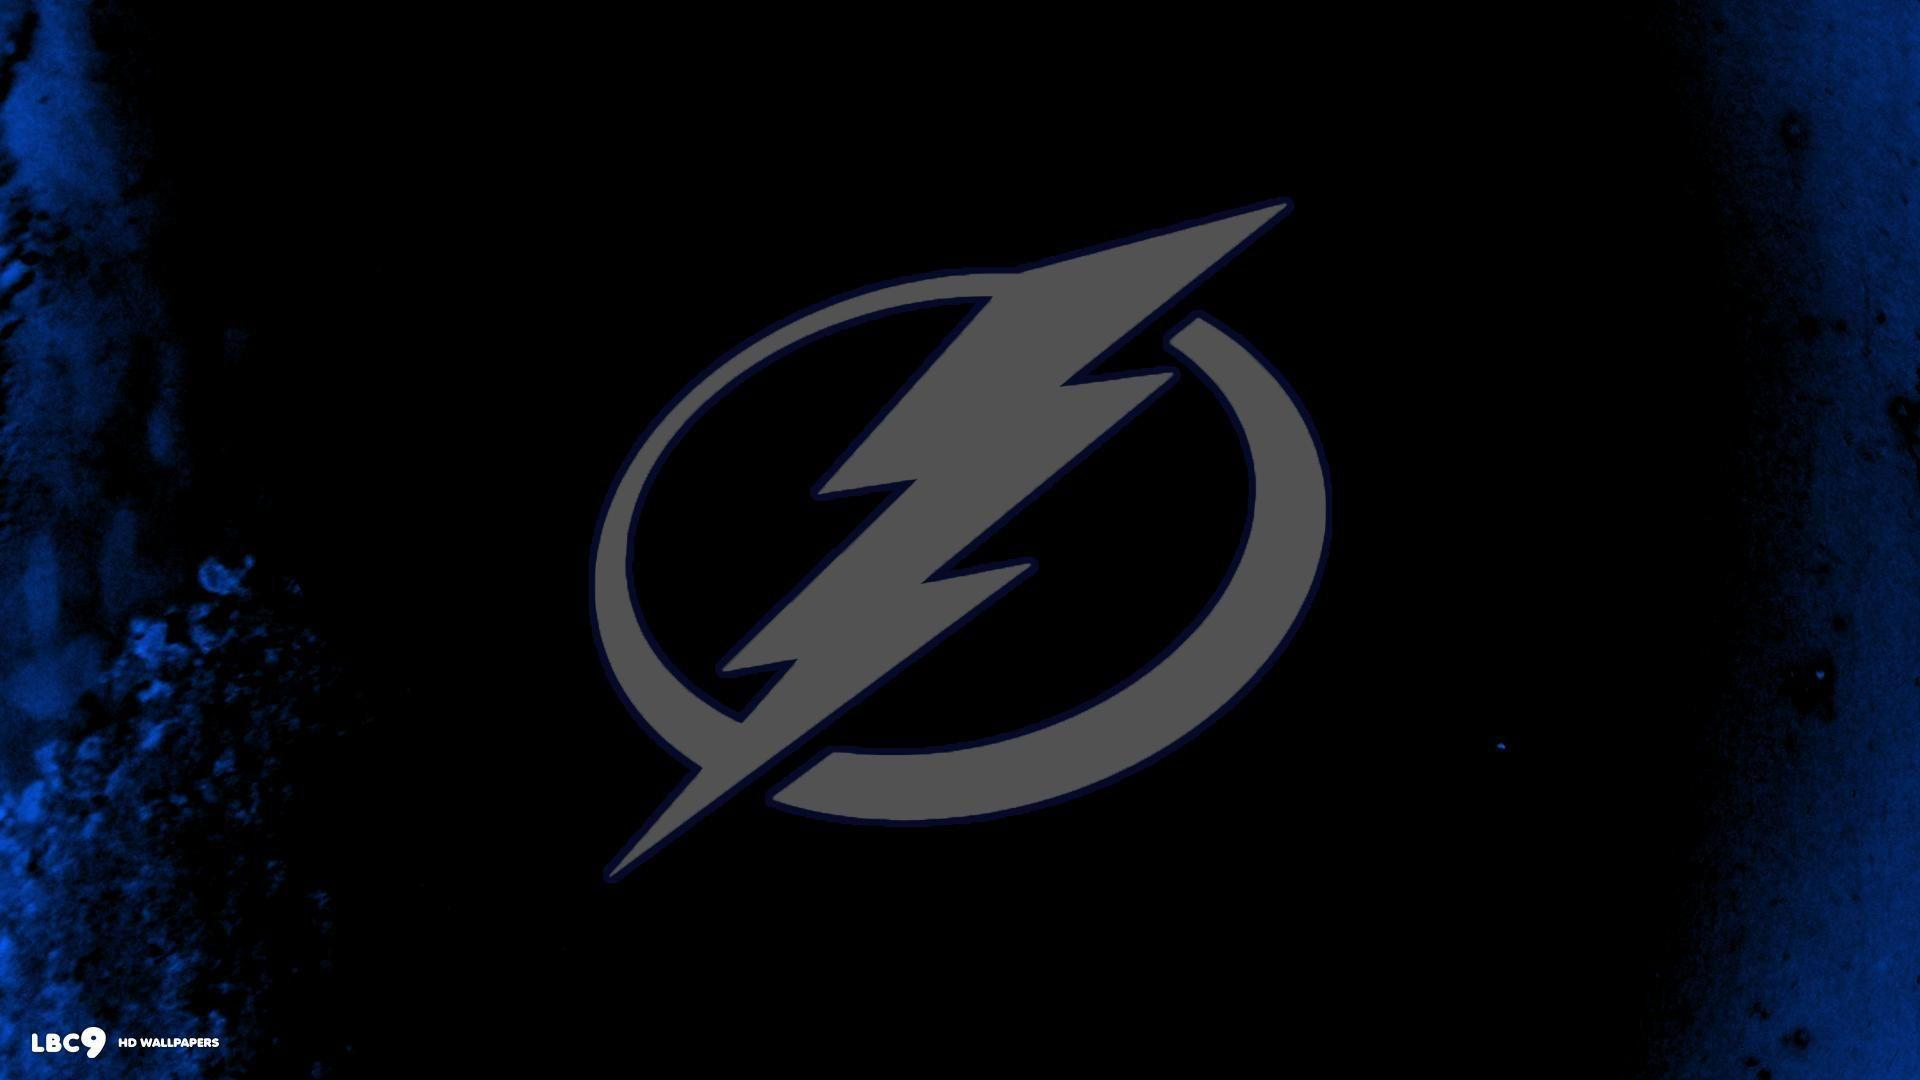 Tampa Bay Lightning Wallpapers 1920x1080